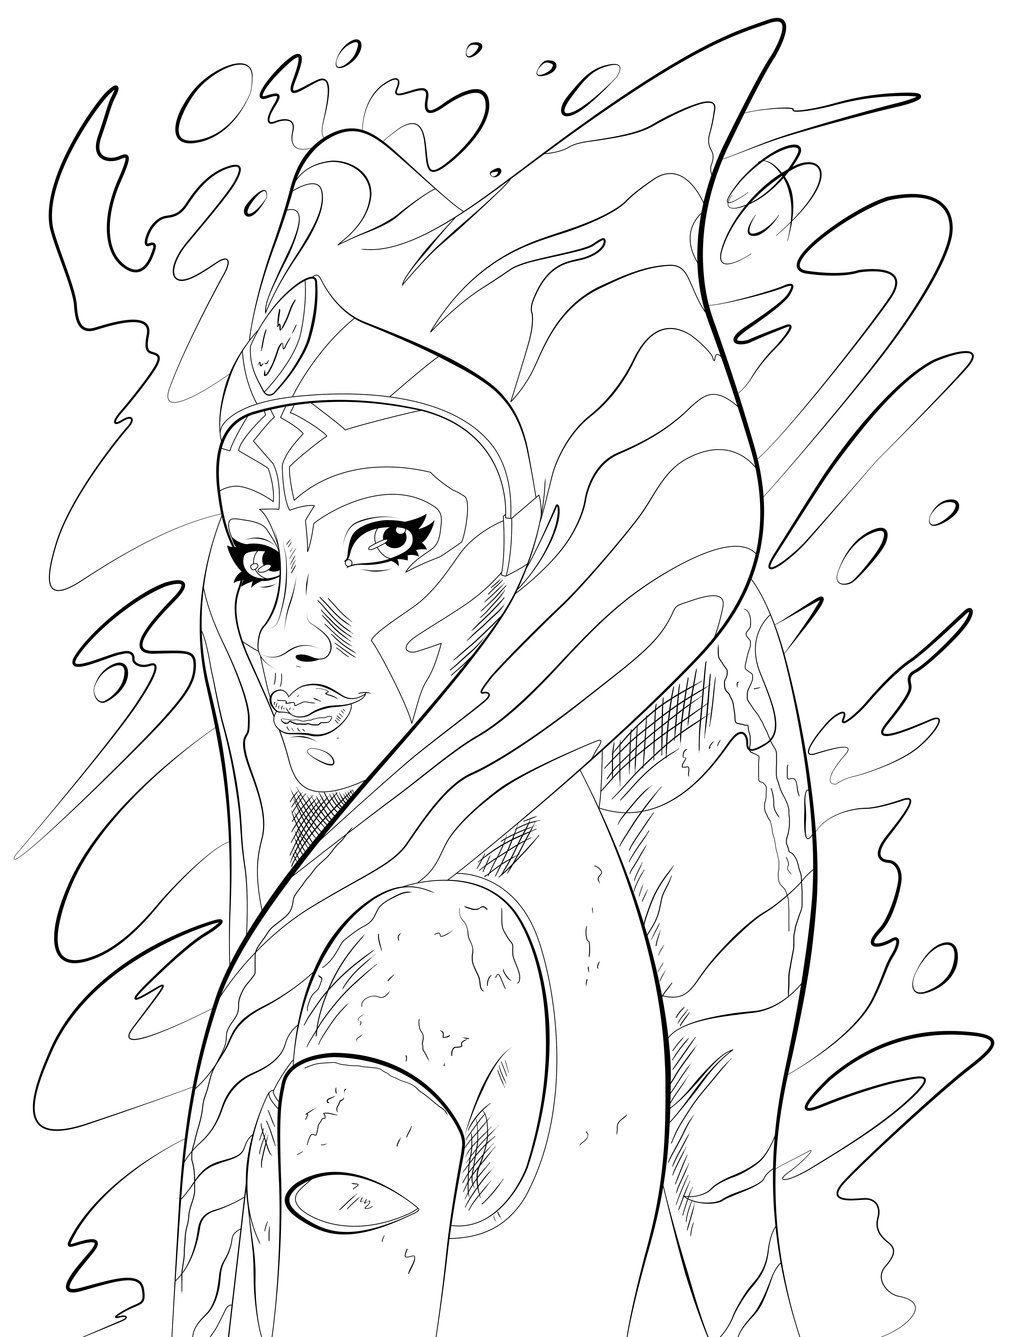 Coloring Pages Ahsoka Tano By RCBrock On DeviantArt